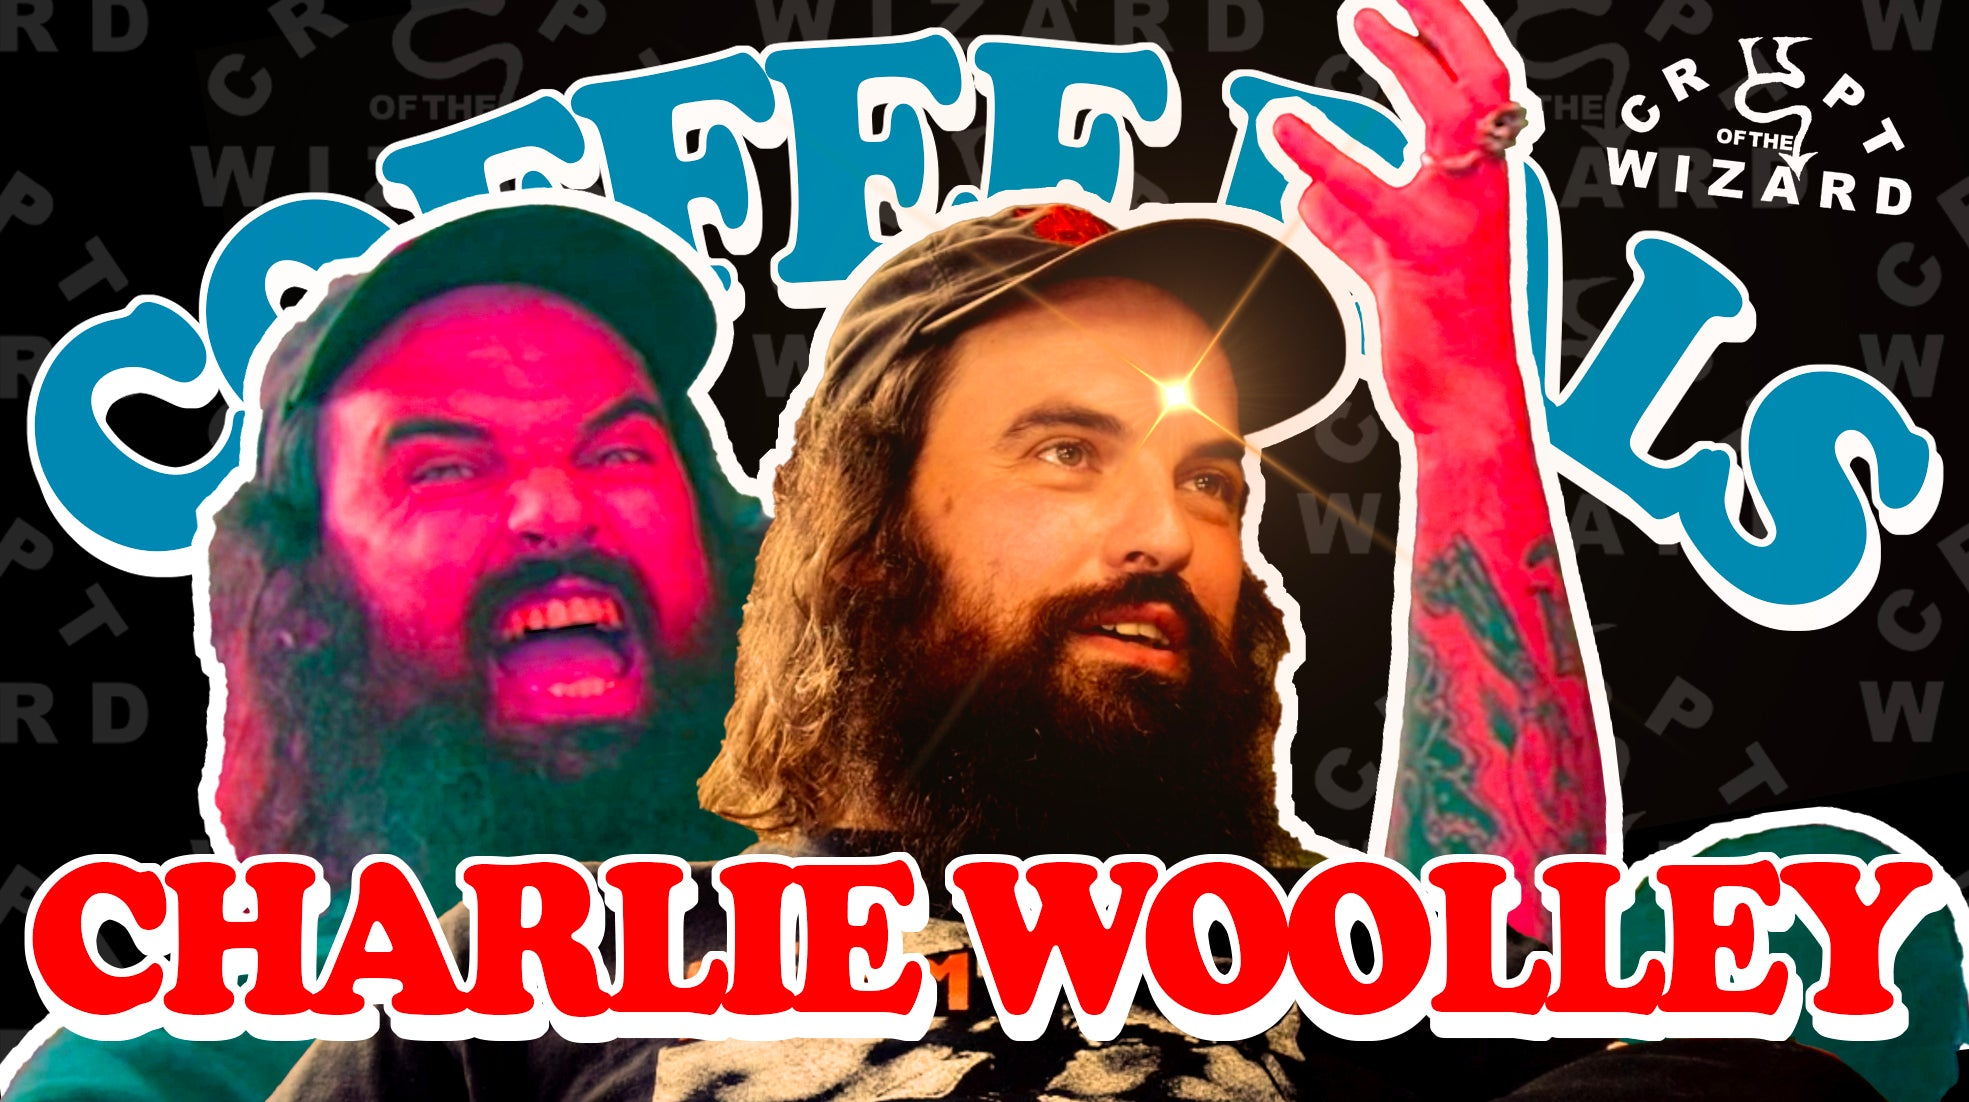 COFFEE PALS - Charlie Woolley of Crypt of the Wizard